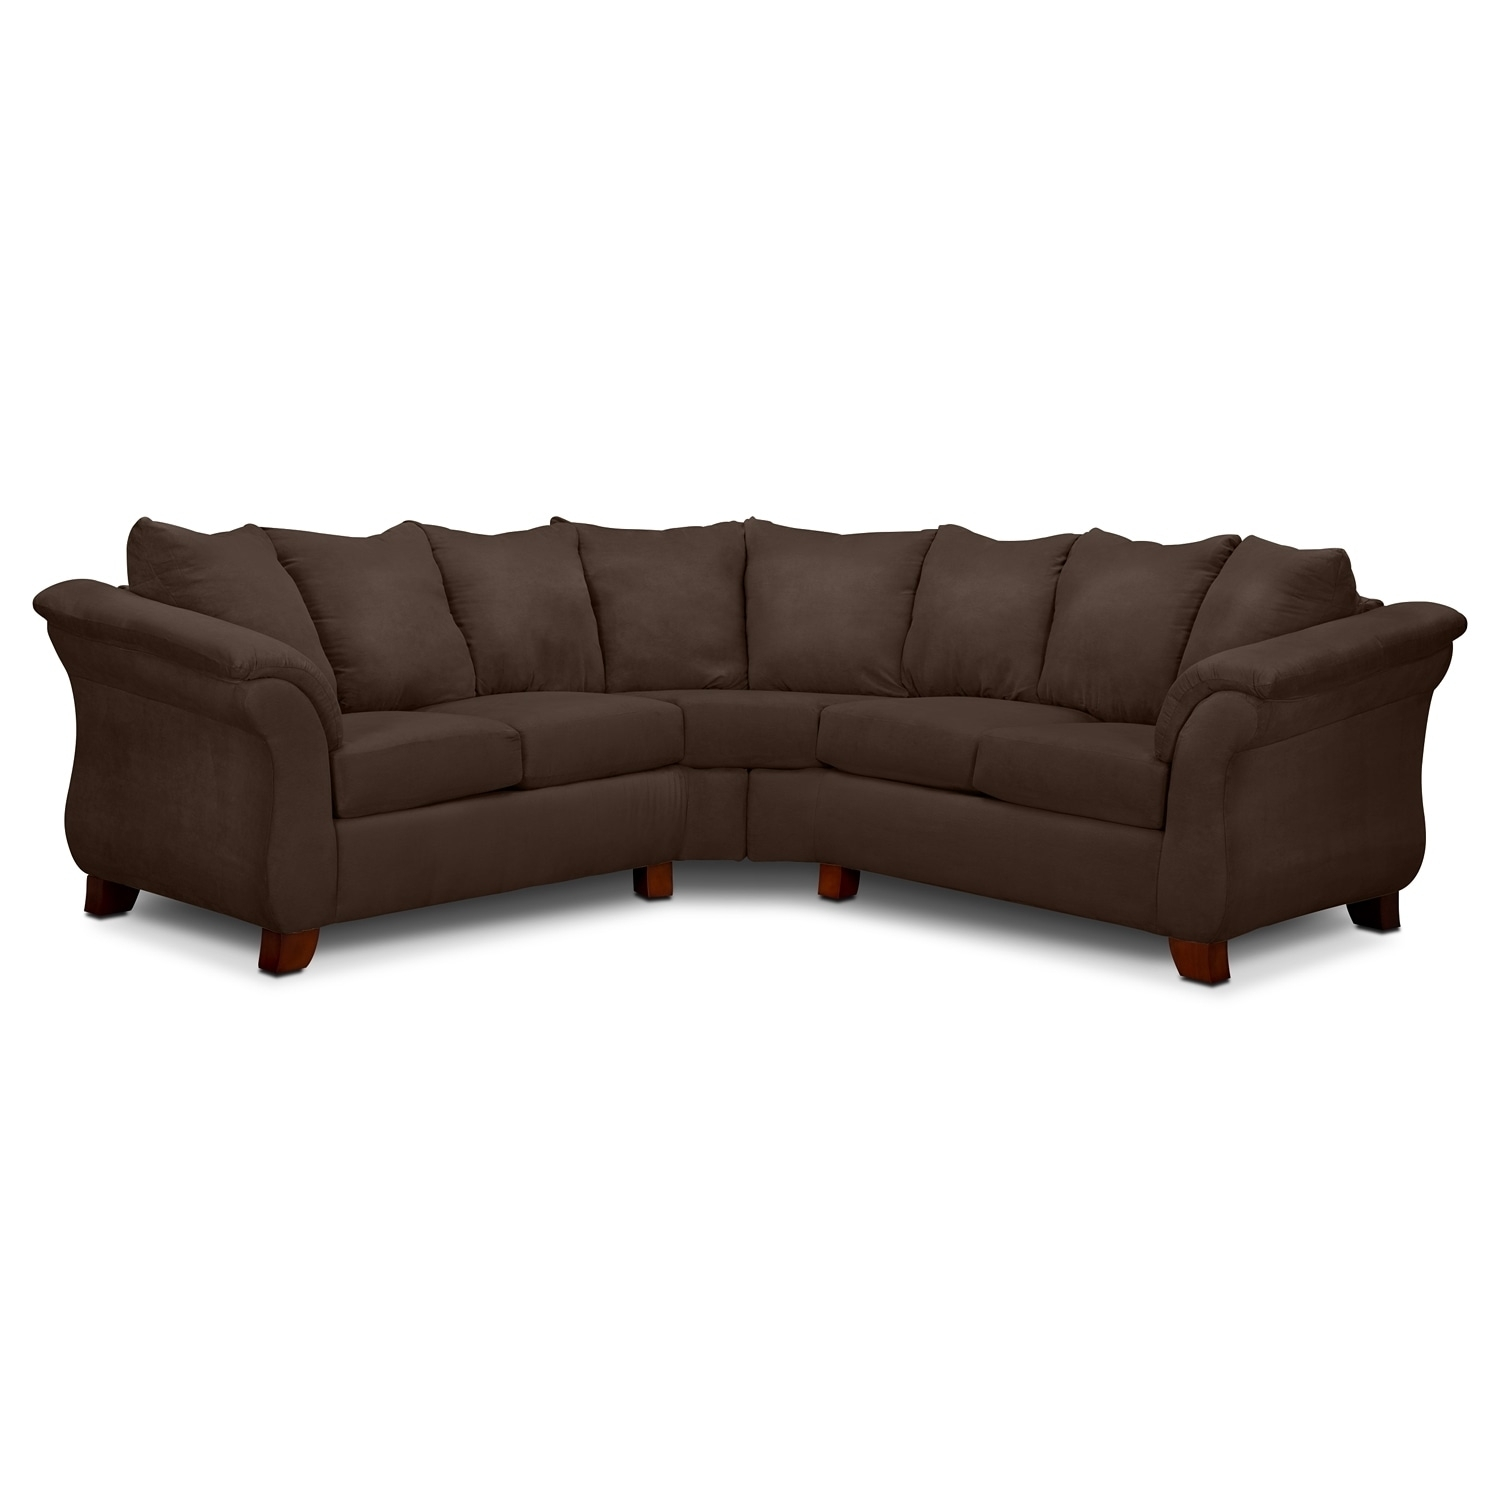 Sectionals Under $800 | Value City Furniture And Mattresses Intended For Sectional Sofas Under (View 7 of 10)